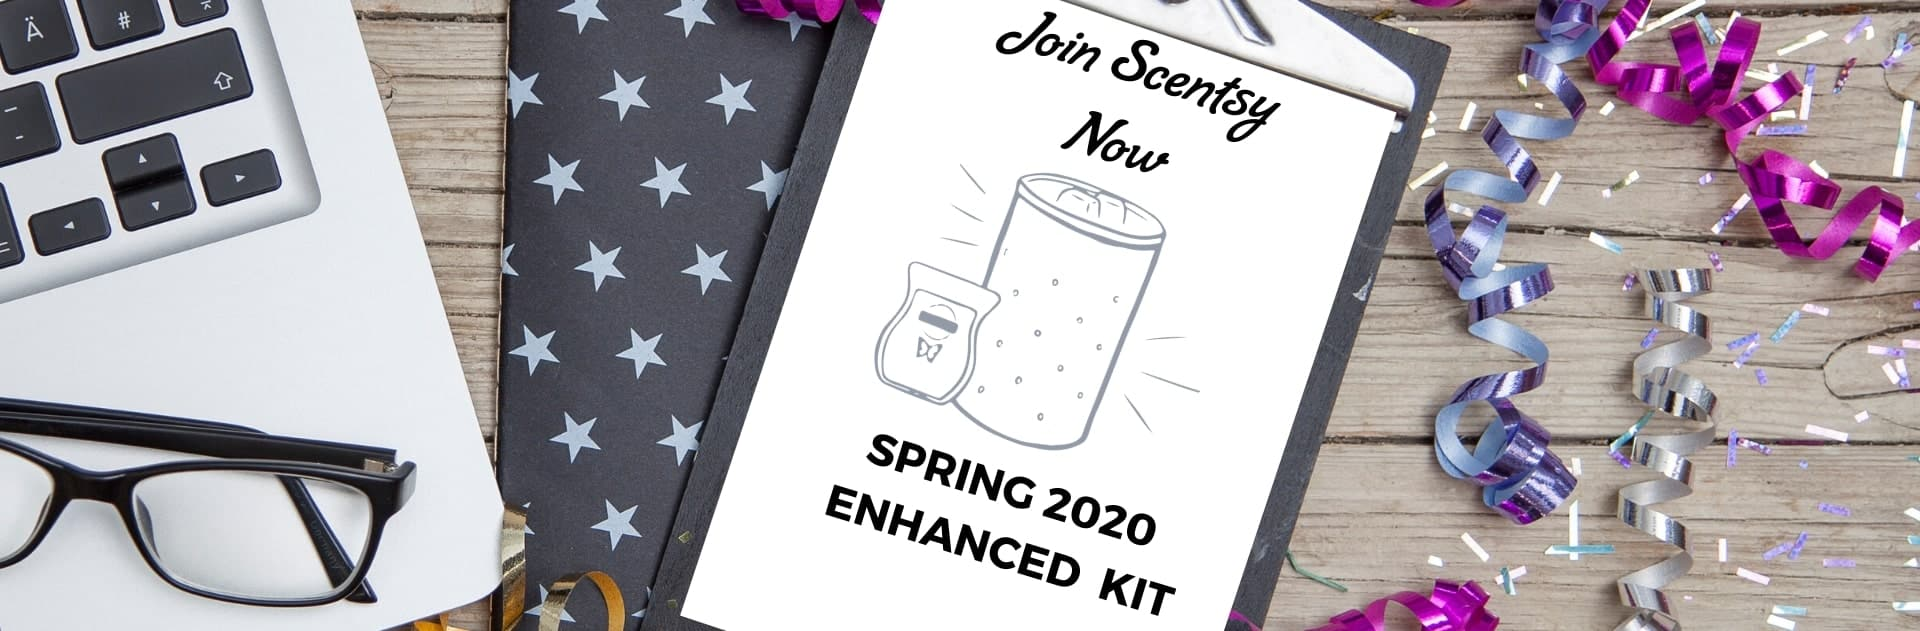 JOIN SCENTSY NOW SPRING 2020 KIT